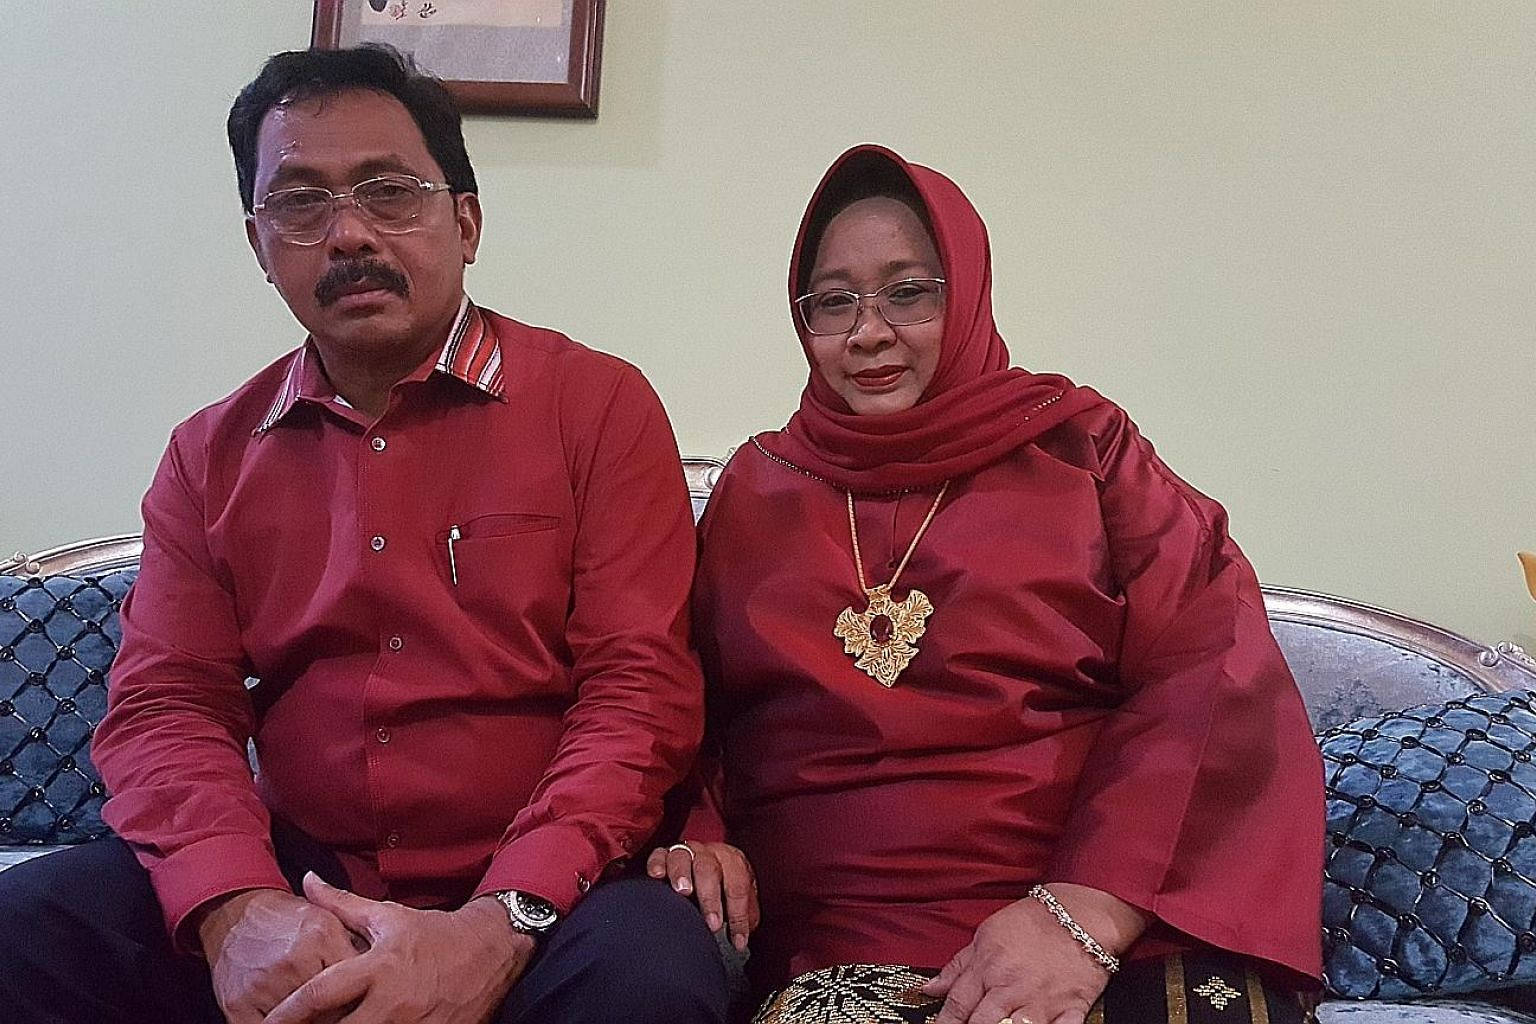 Riau Governor Nurdin Basirun and his wife, Madam Noor Lizah Mohamed Taib, were an odd couple when they first met. He was a kampung boy and she, then 18 and fresh out of Stamford College, a strong-minded, modern girl. Now she chairs the provincial can